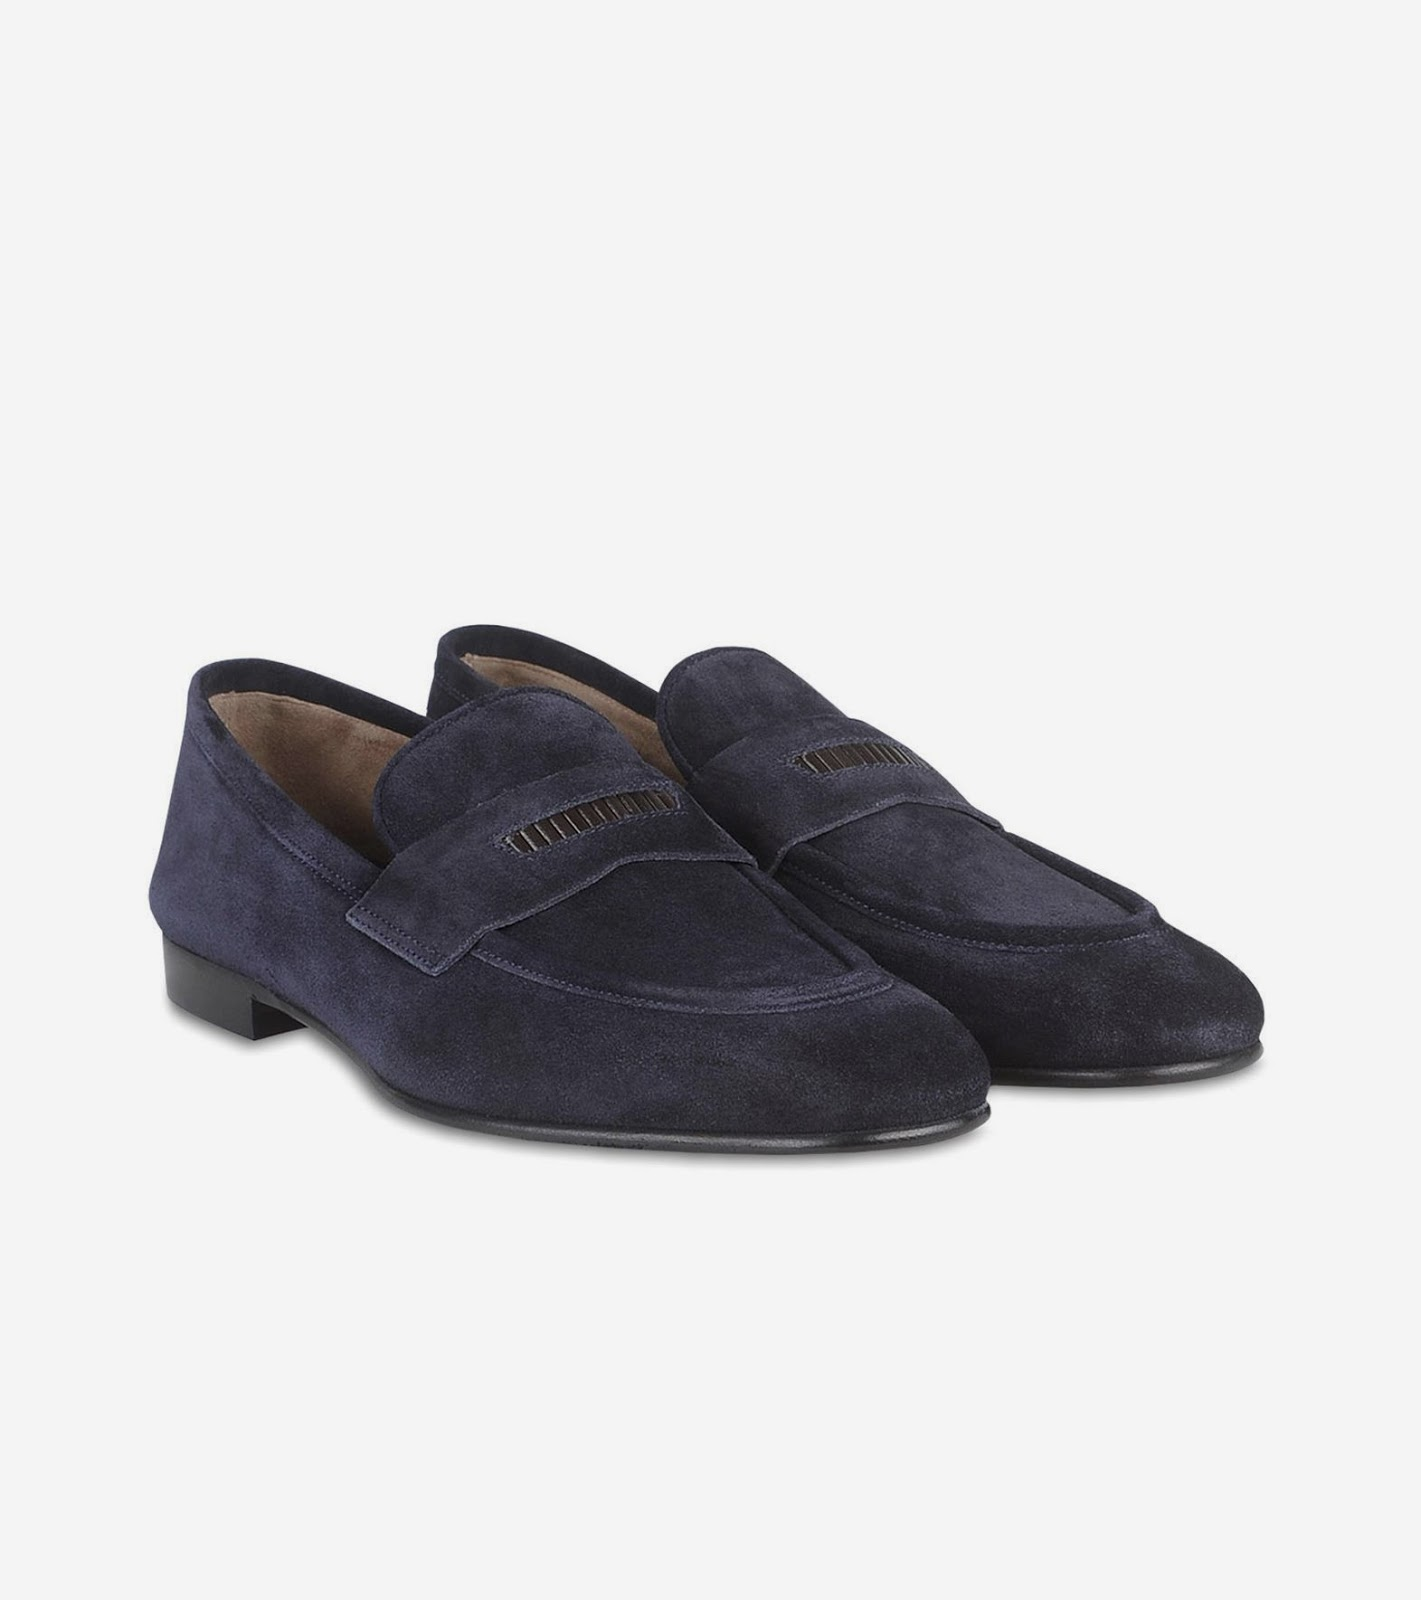 The perfect smart casual loafers in blue suede Heel height 0 8 inches leather